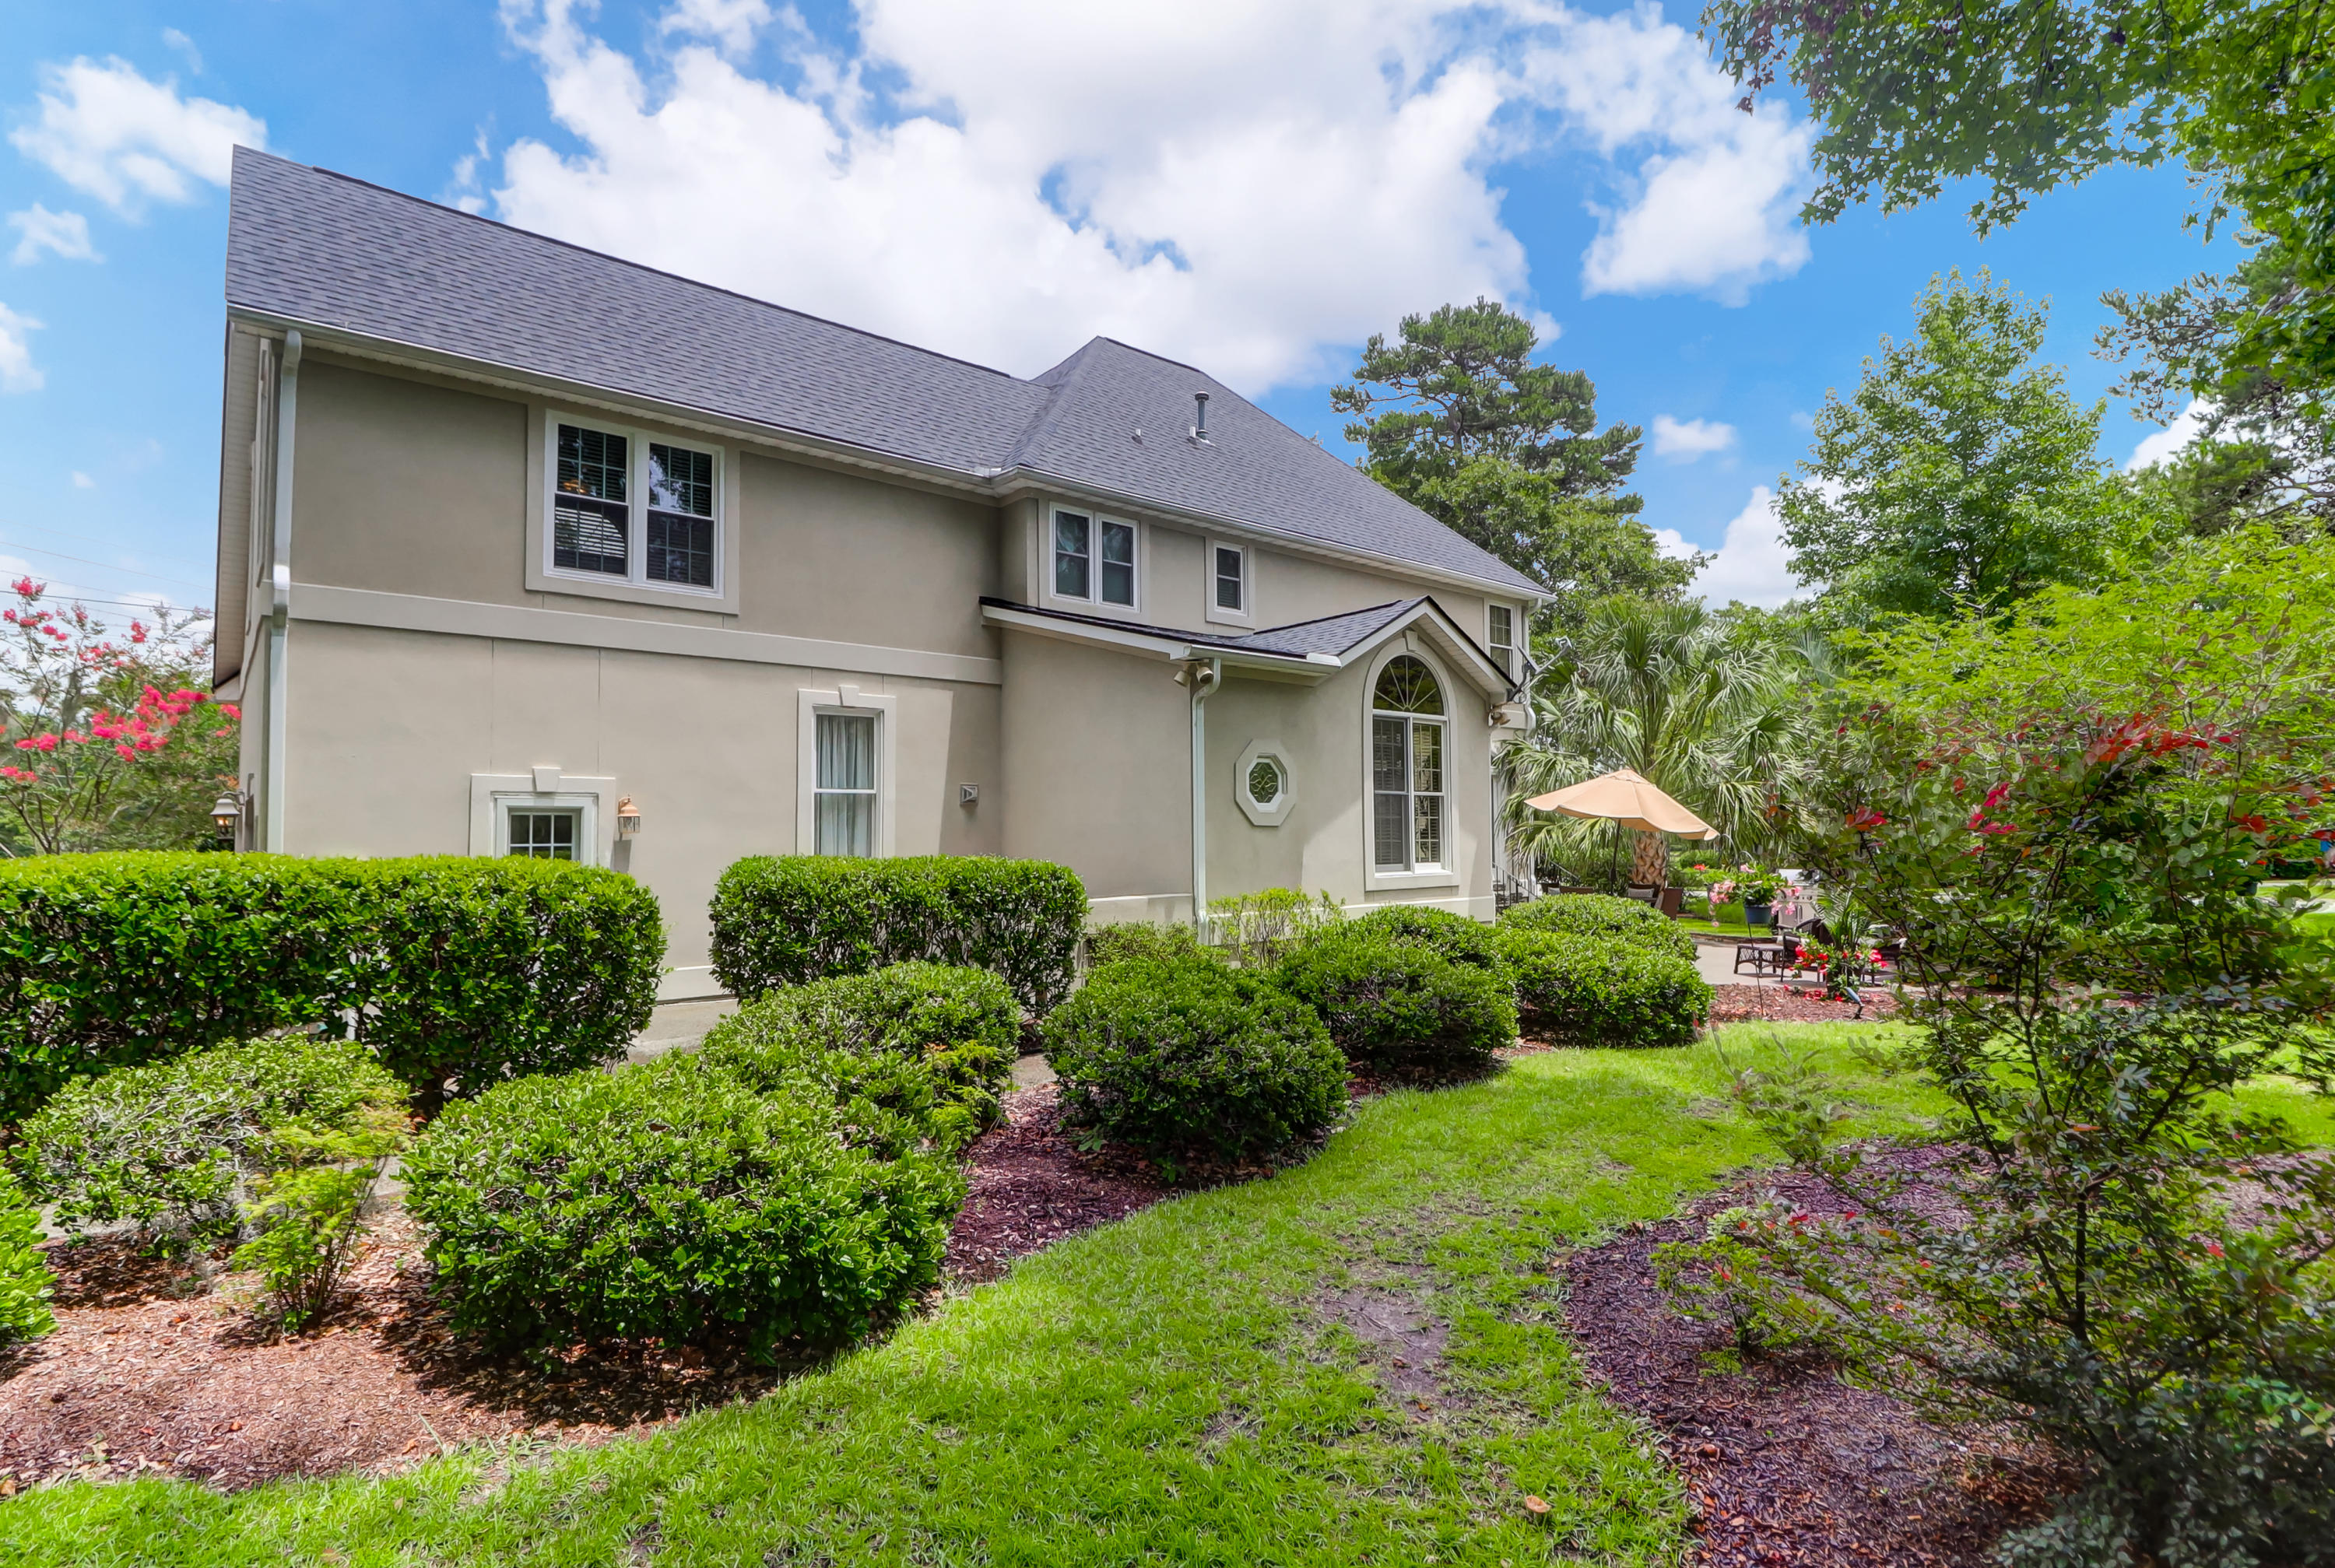 Coosaw Creek Country Club Homes For Sale - 8696 Fairway Woods, North Charleston, SC - 11